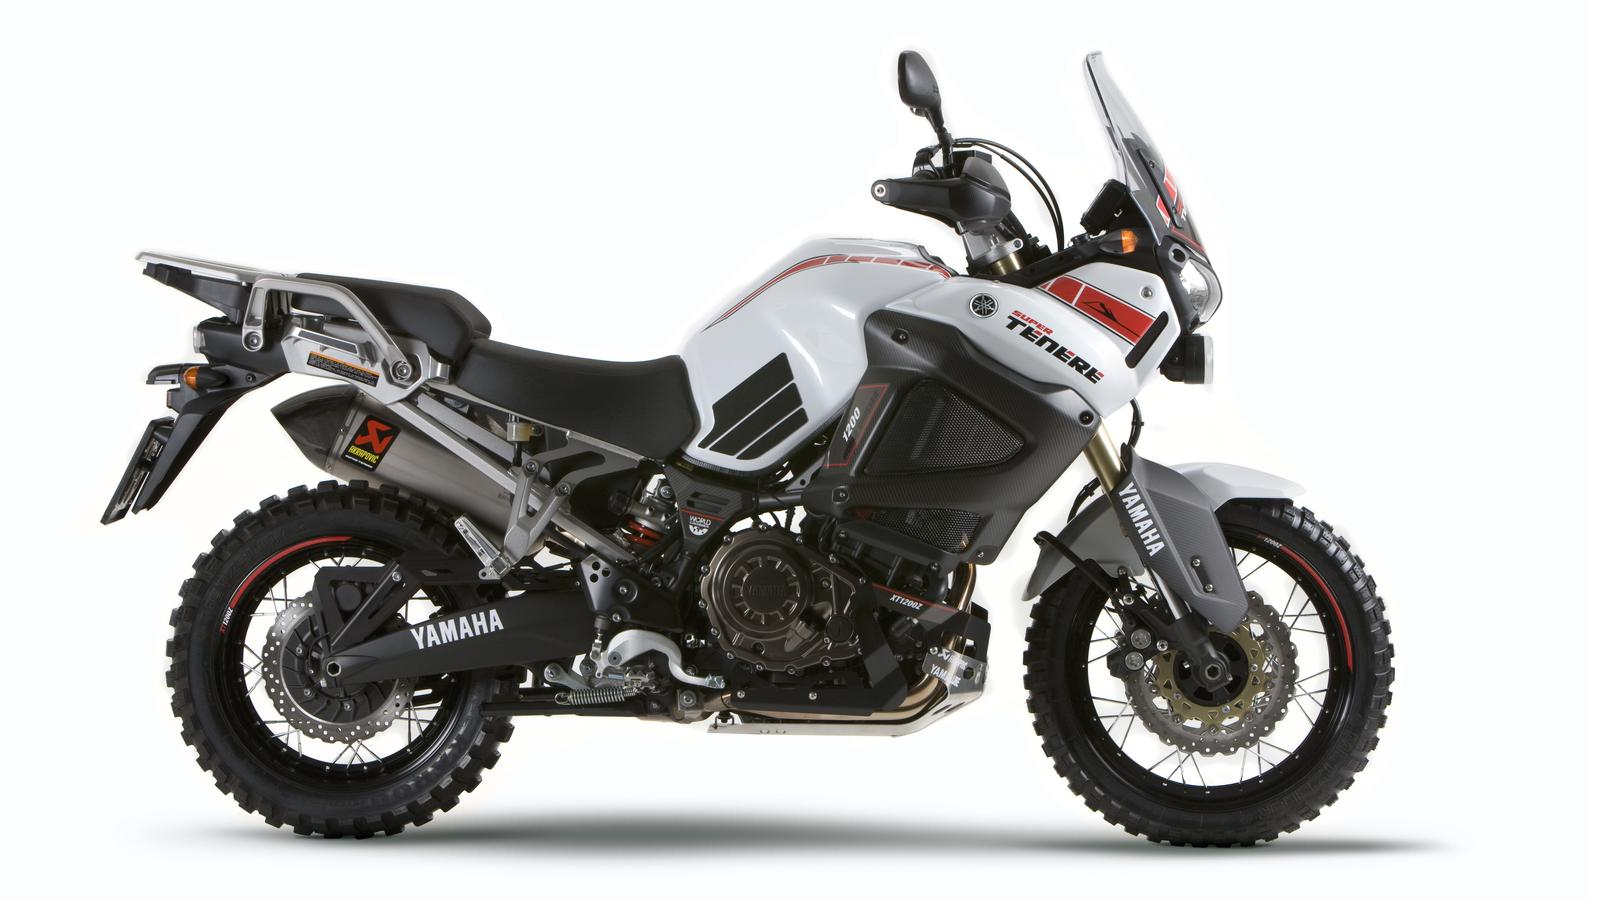 yamaha launches new super tenere xt1200z world crosser. Black Bedroom Furniture Sets. Home Design Ideas